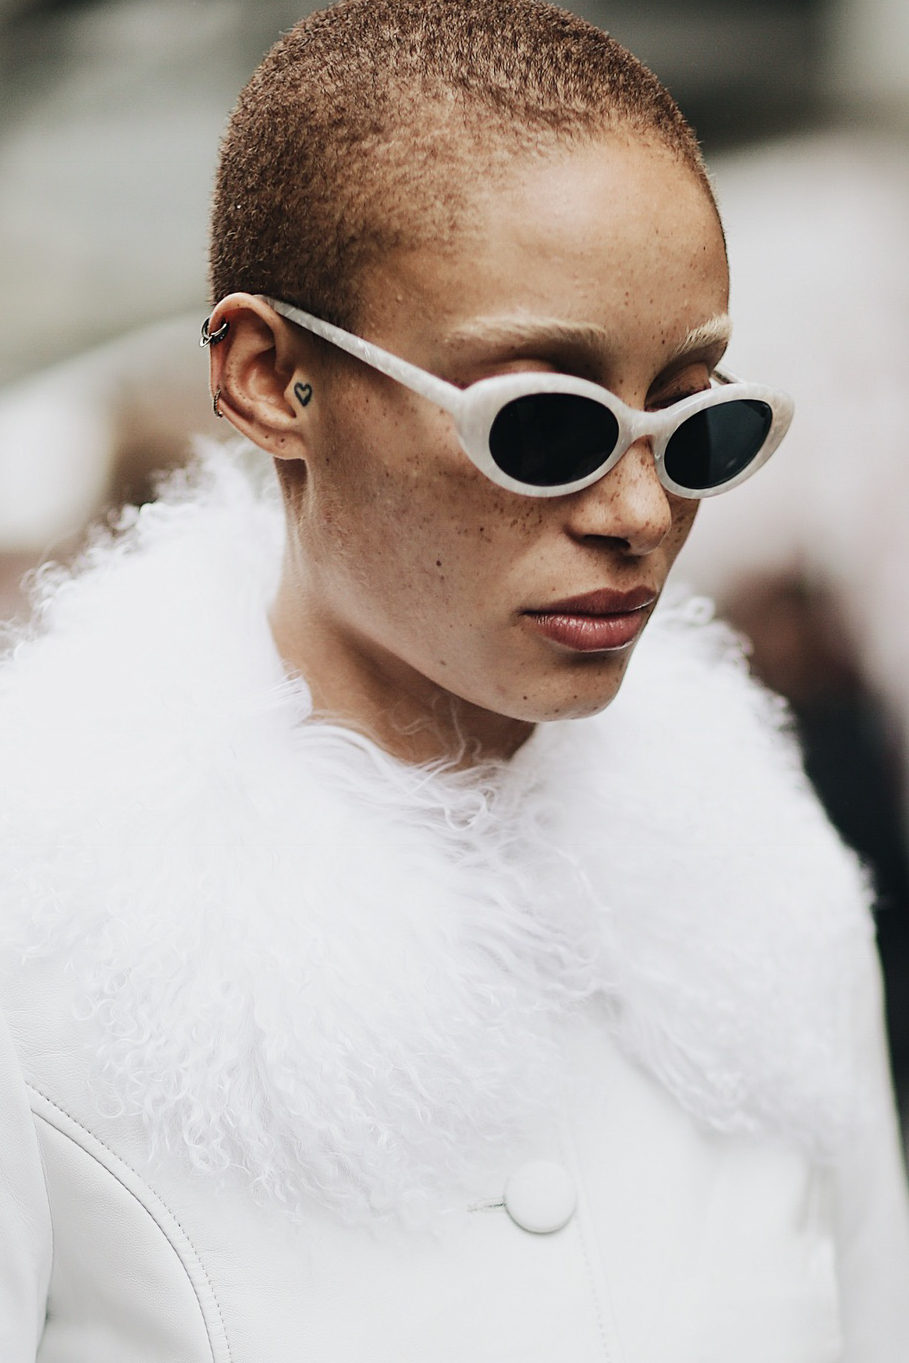 Street Style during Paris Fashion Week: Adwoa Aboah